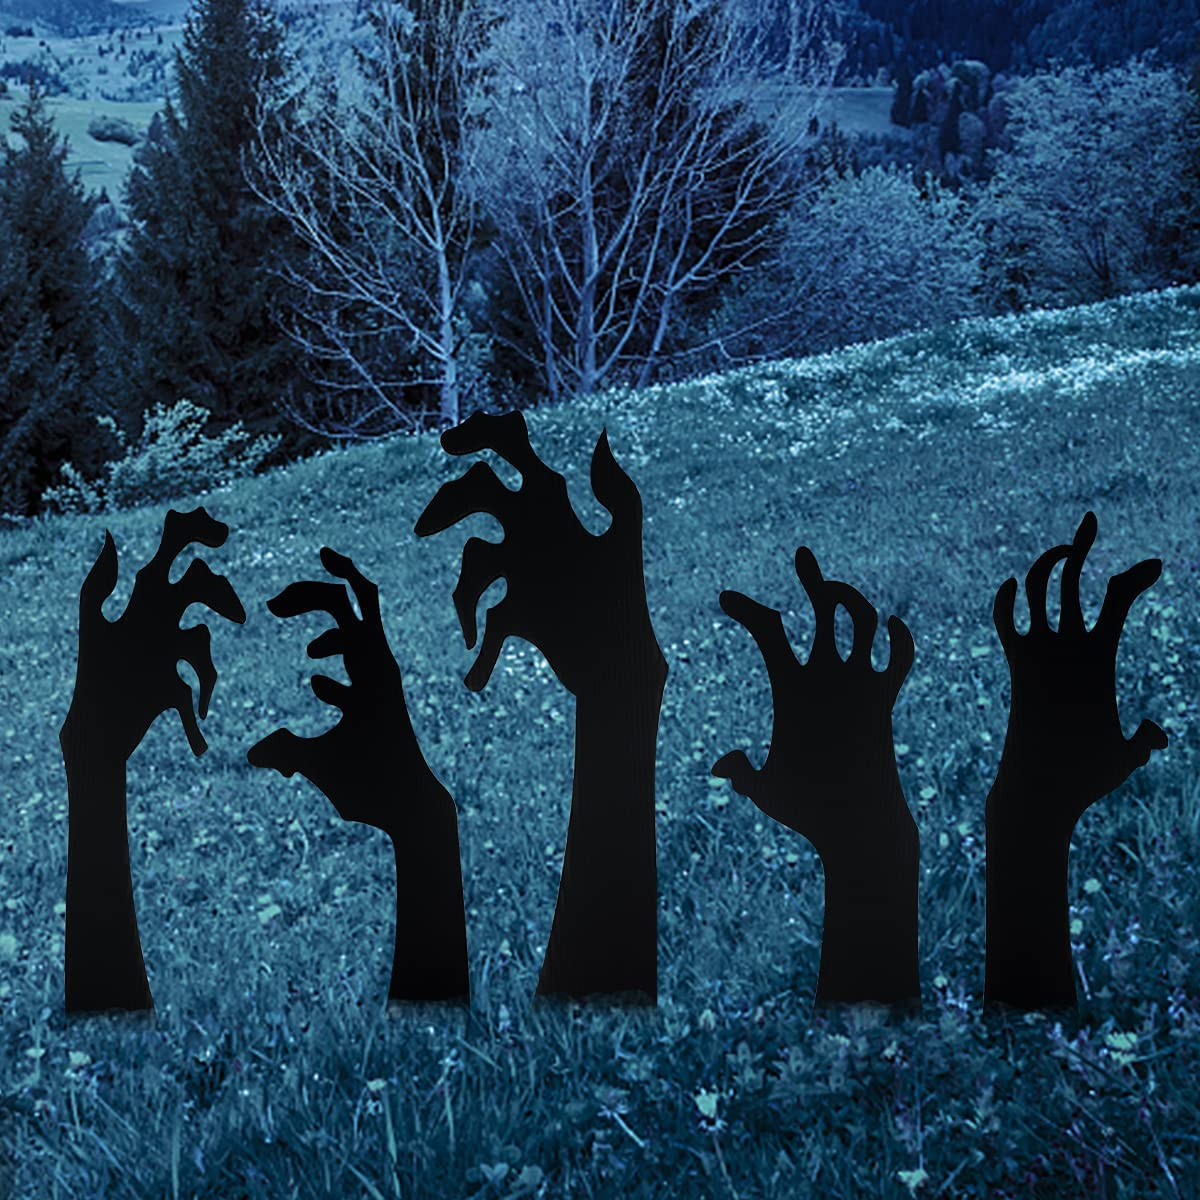 Anditoy 5 Pack Halloween Black Hands Yard Signs with Stakes Scary Silhouette Halloween Decorations for Outdoor Yard Lawn Garden Halloween Decor